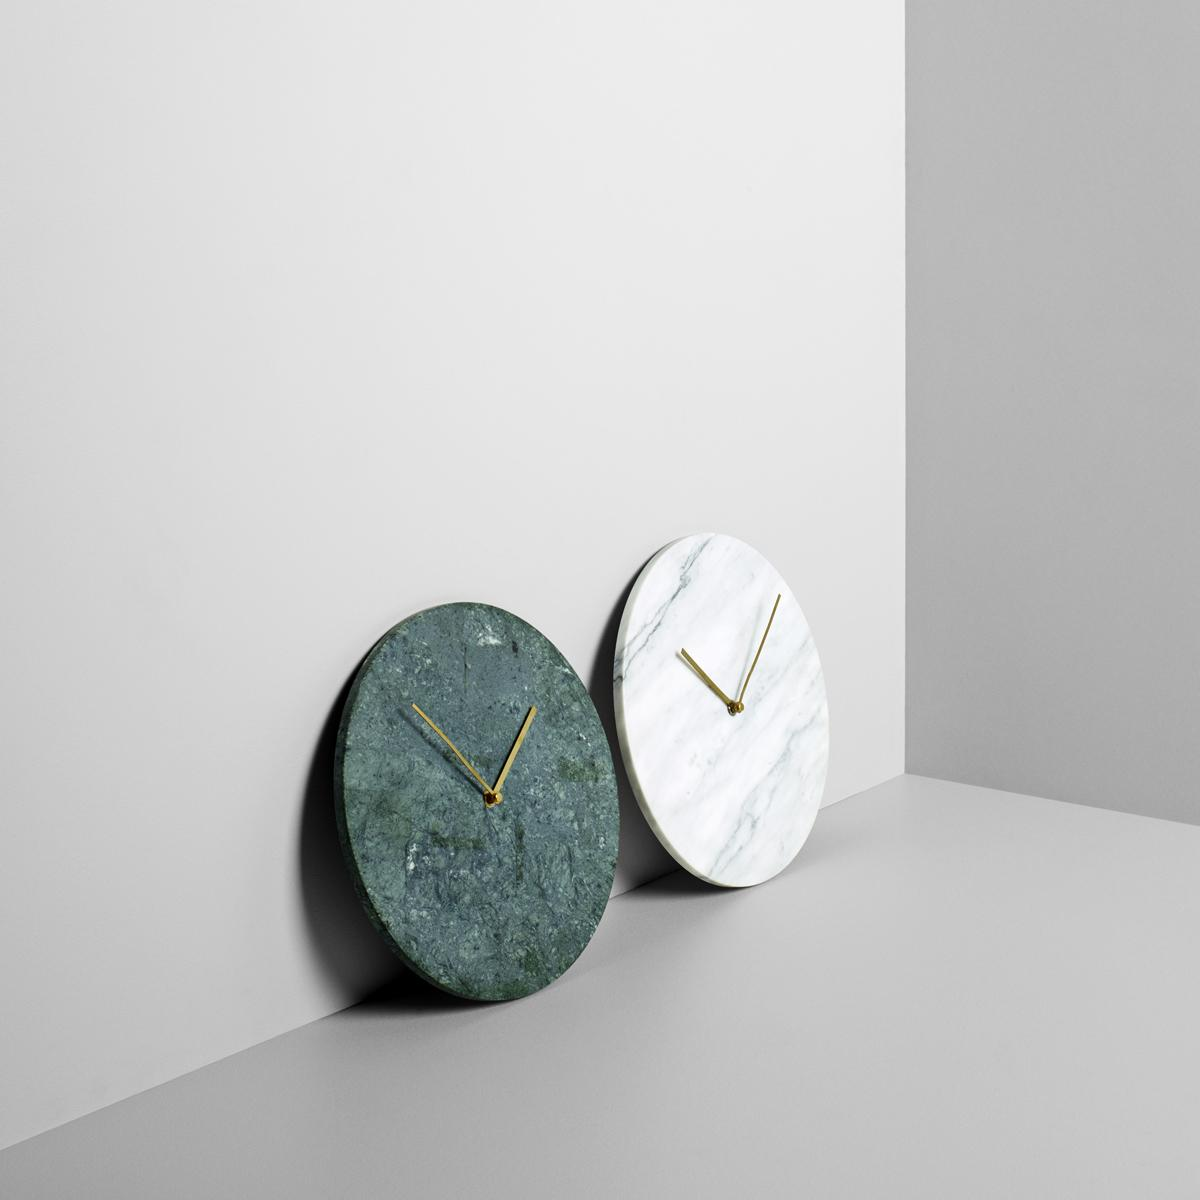 Menu-Marble-Clock-Green-White-Insitu-1200